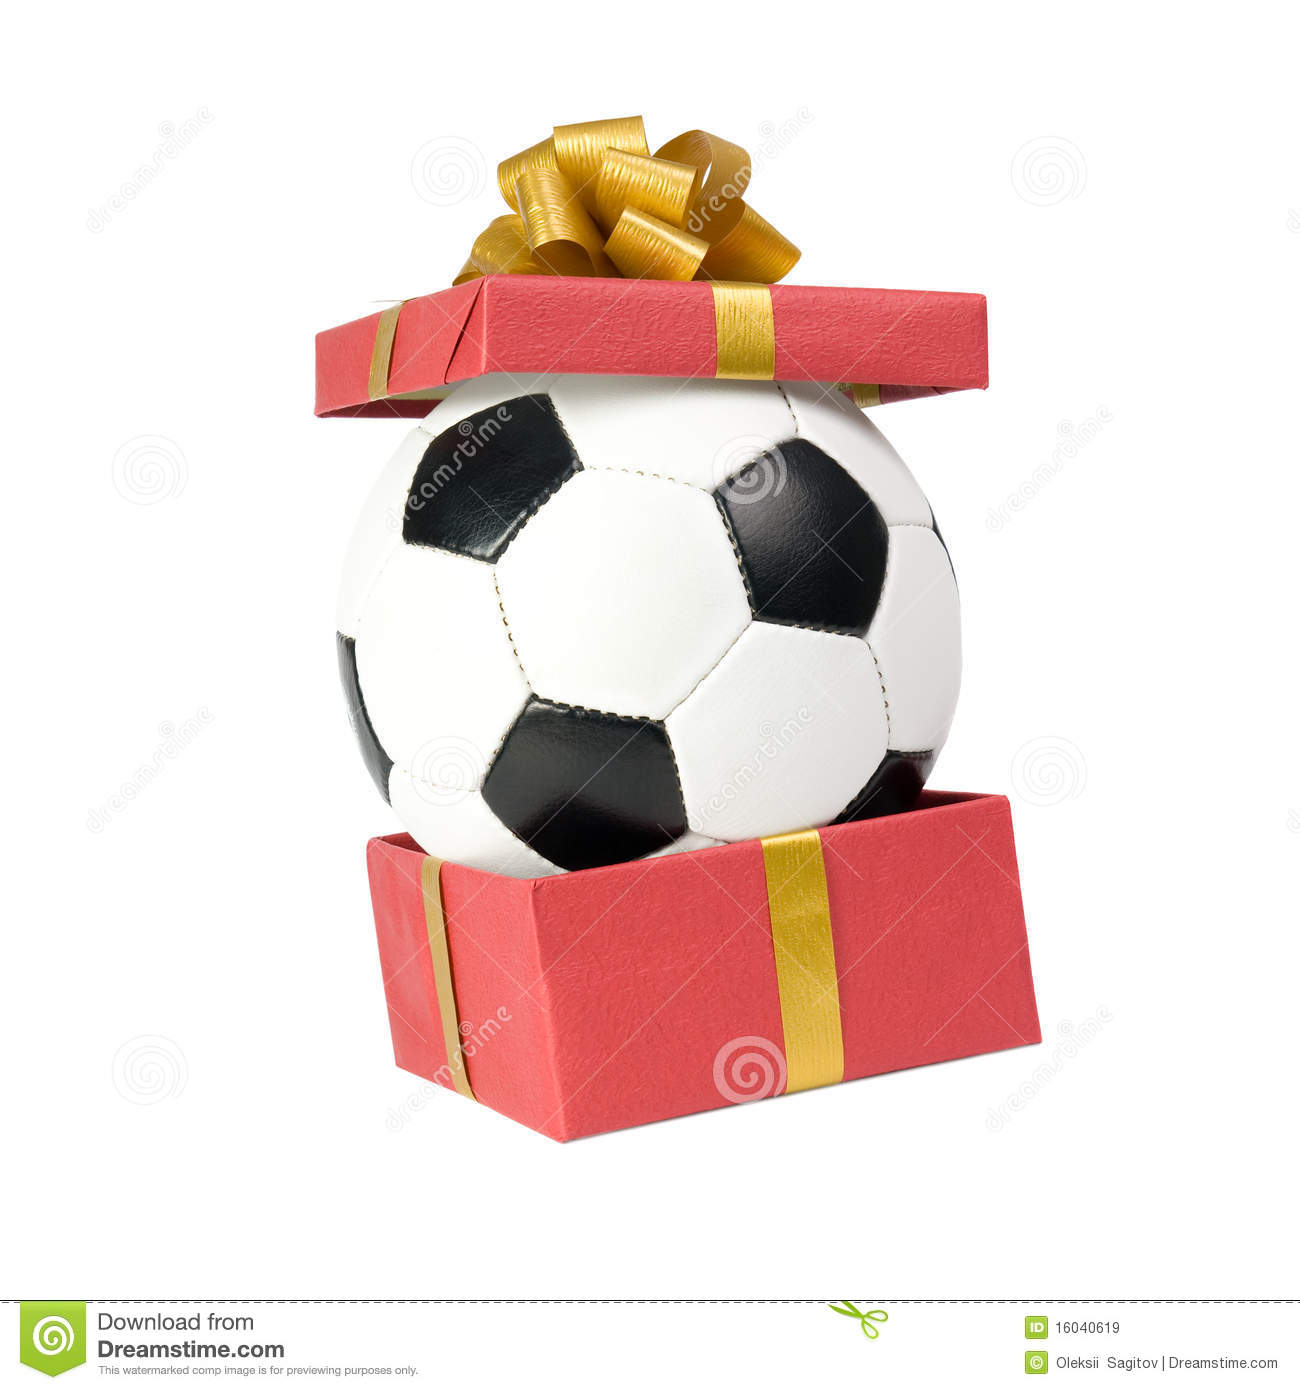 soccer ball in a gift box stock image image of birthday 16040619. Black Bedroom Furniture Sets. Home Design Ideas